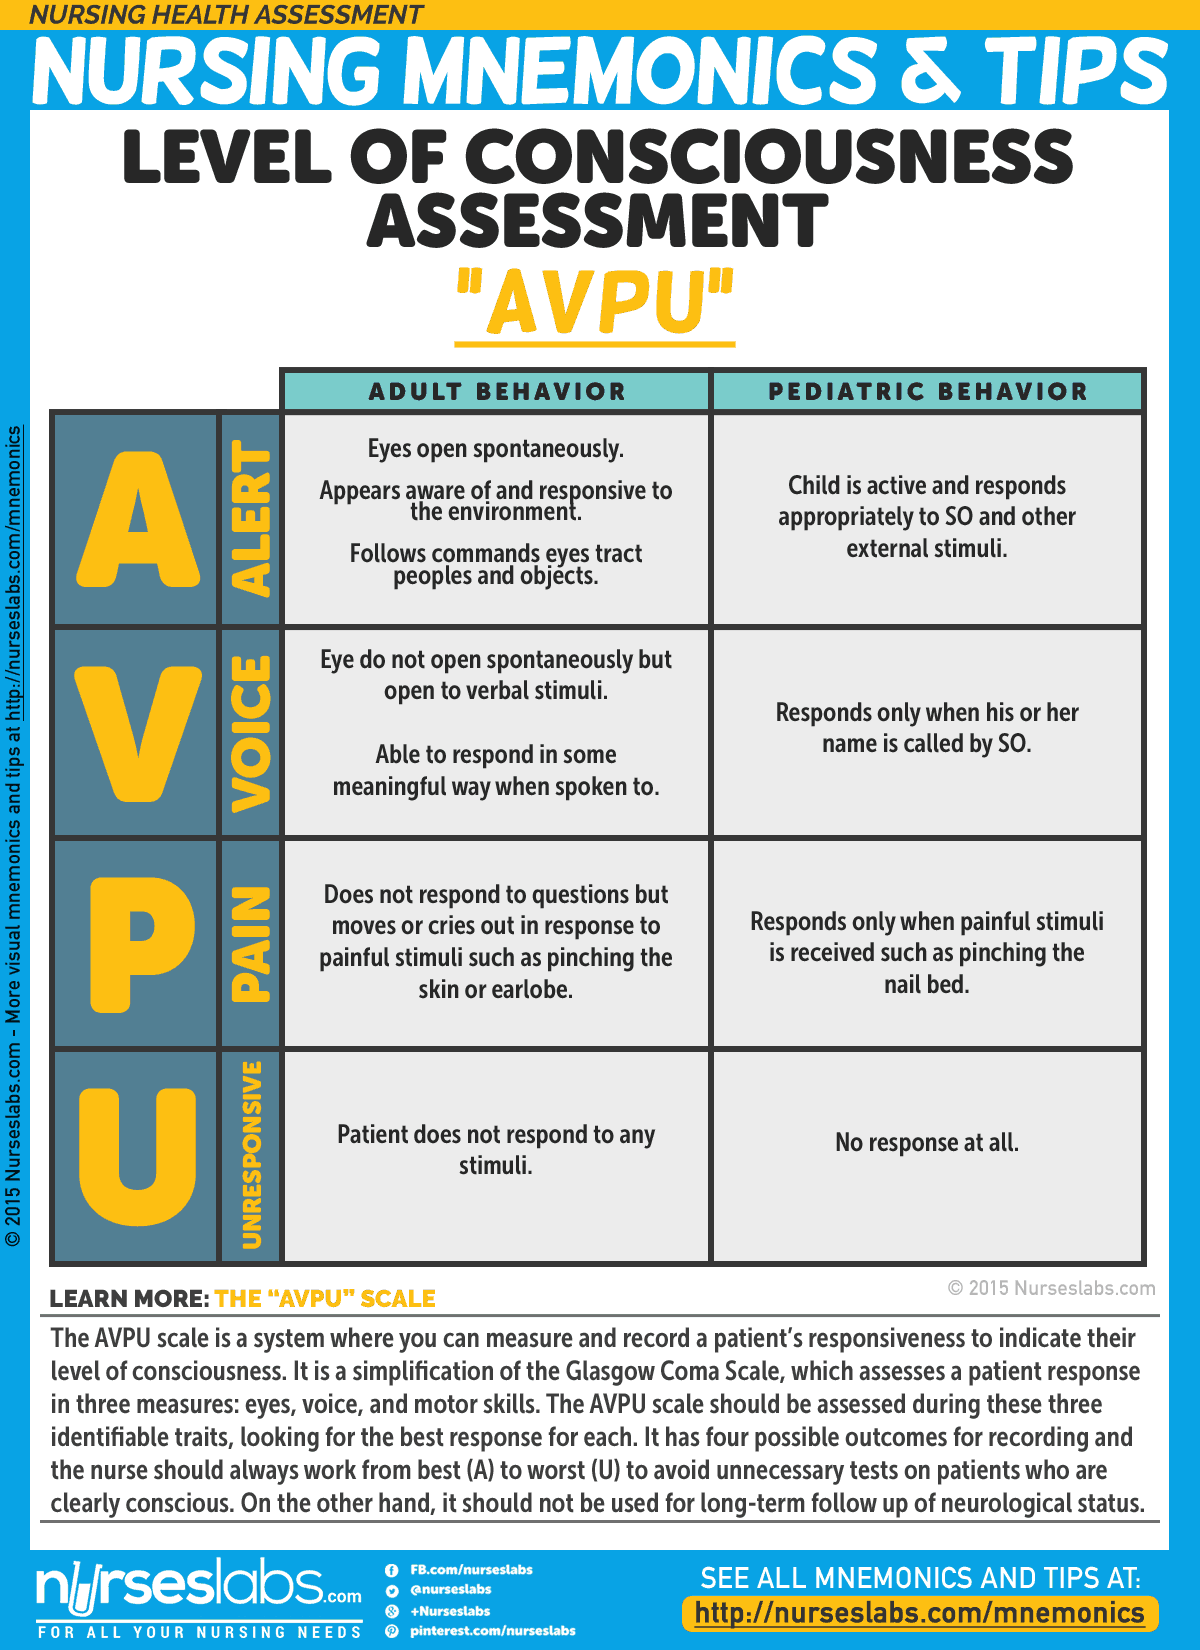 NHA-001: Level of Consciousness Assessment (AVPU) Nursing Mnemonics and Tips